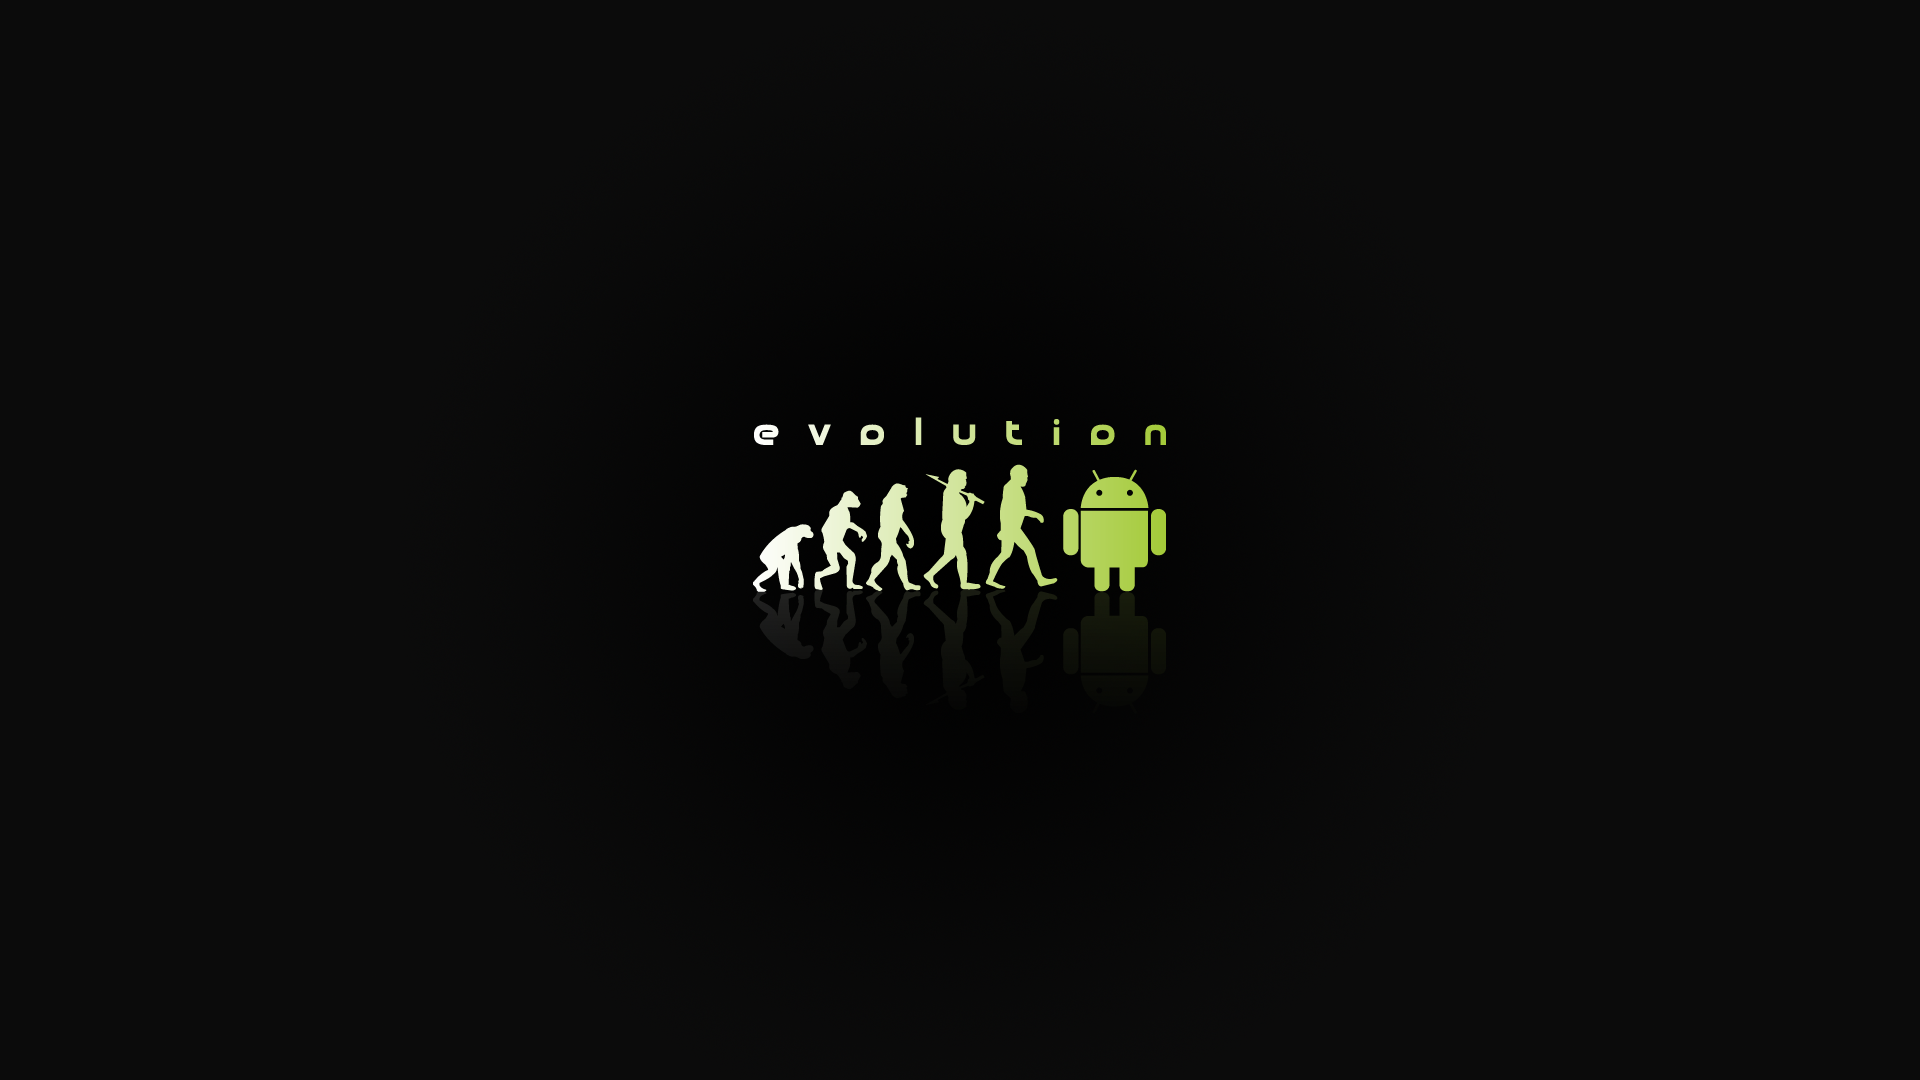 Android Computer wallpaper 1920x1080 22138 1920x1080